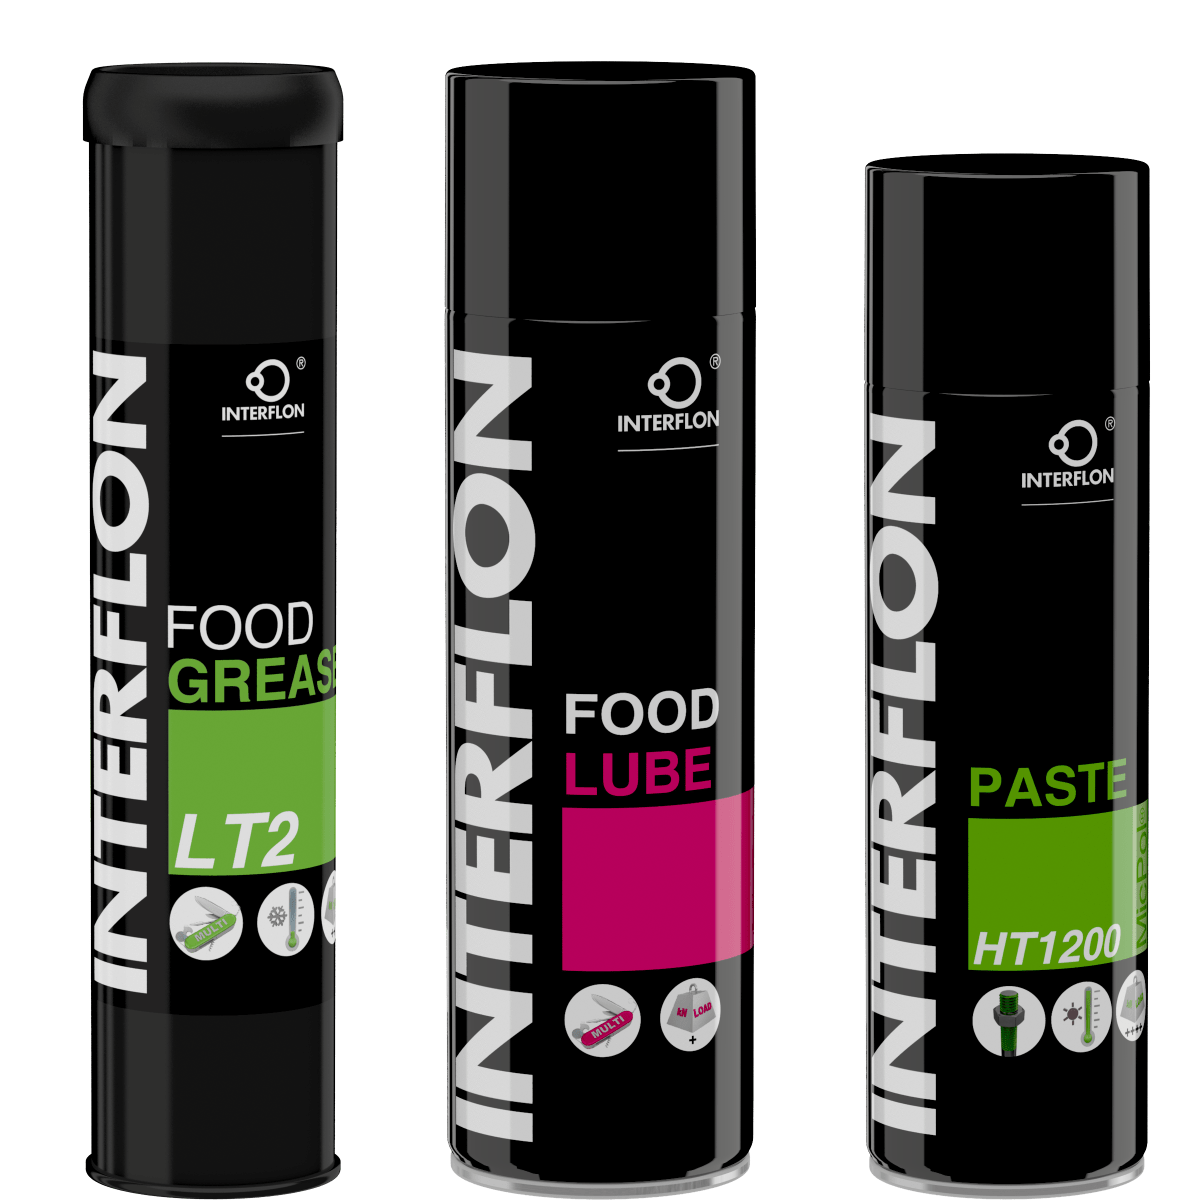 Interflon lubricants for food producers